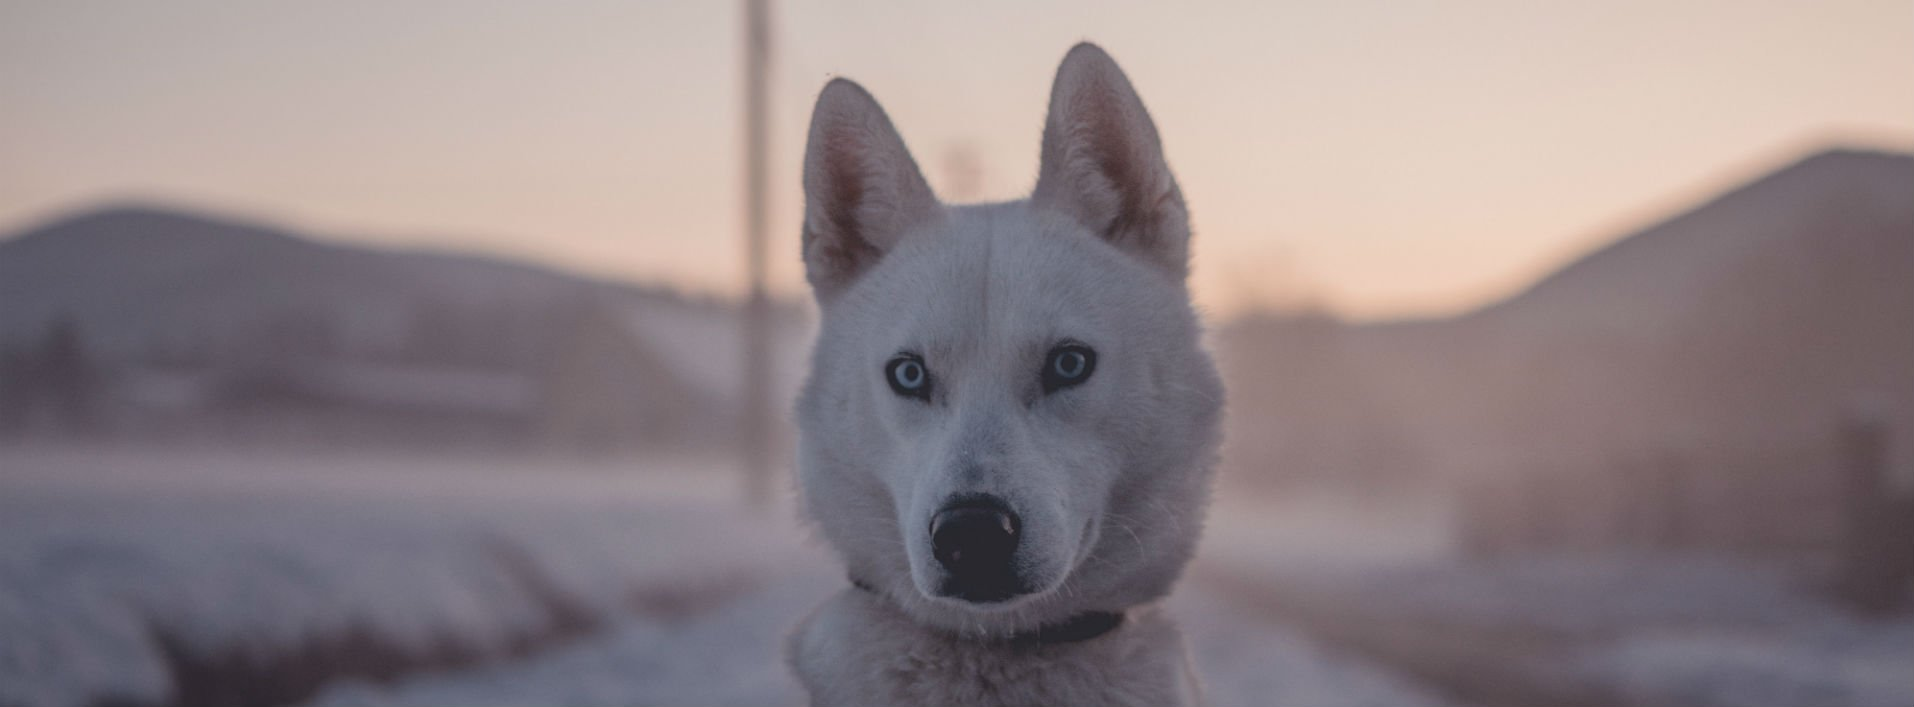 White husky dog in winter scene: Homonyms in English